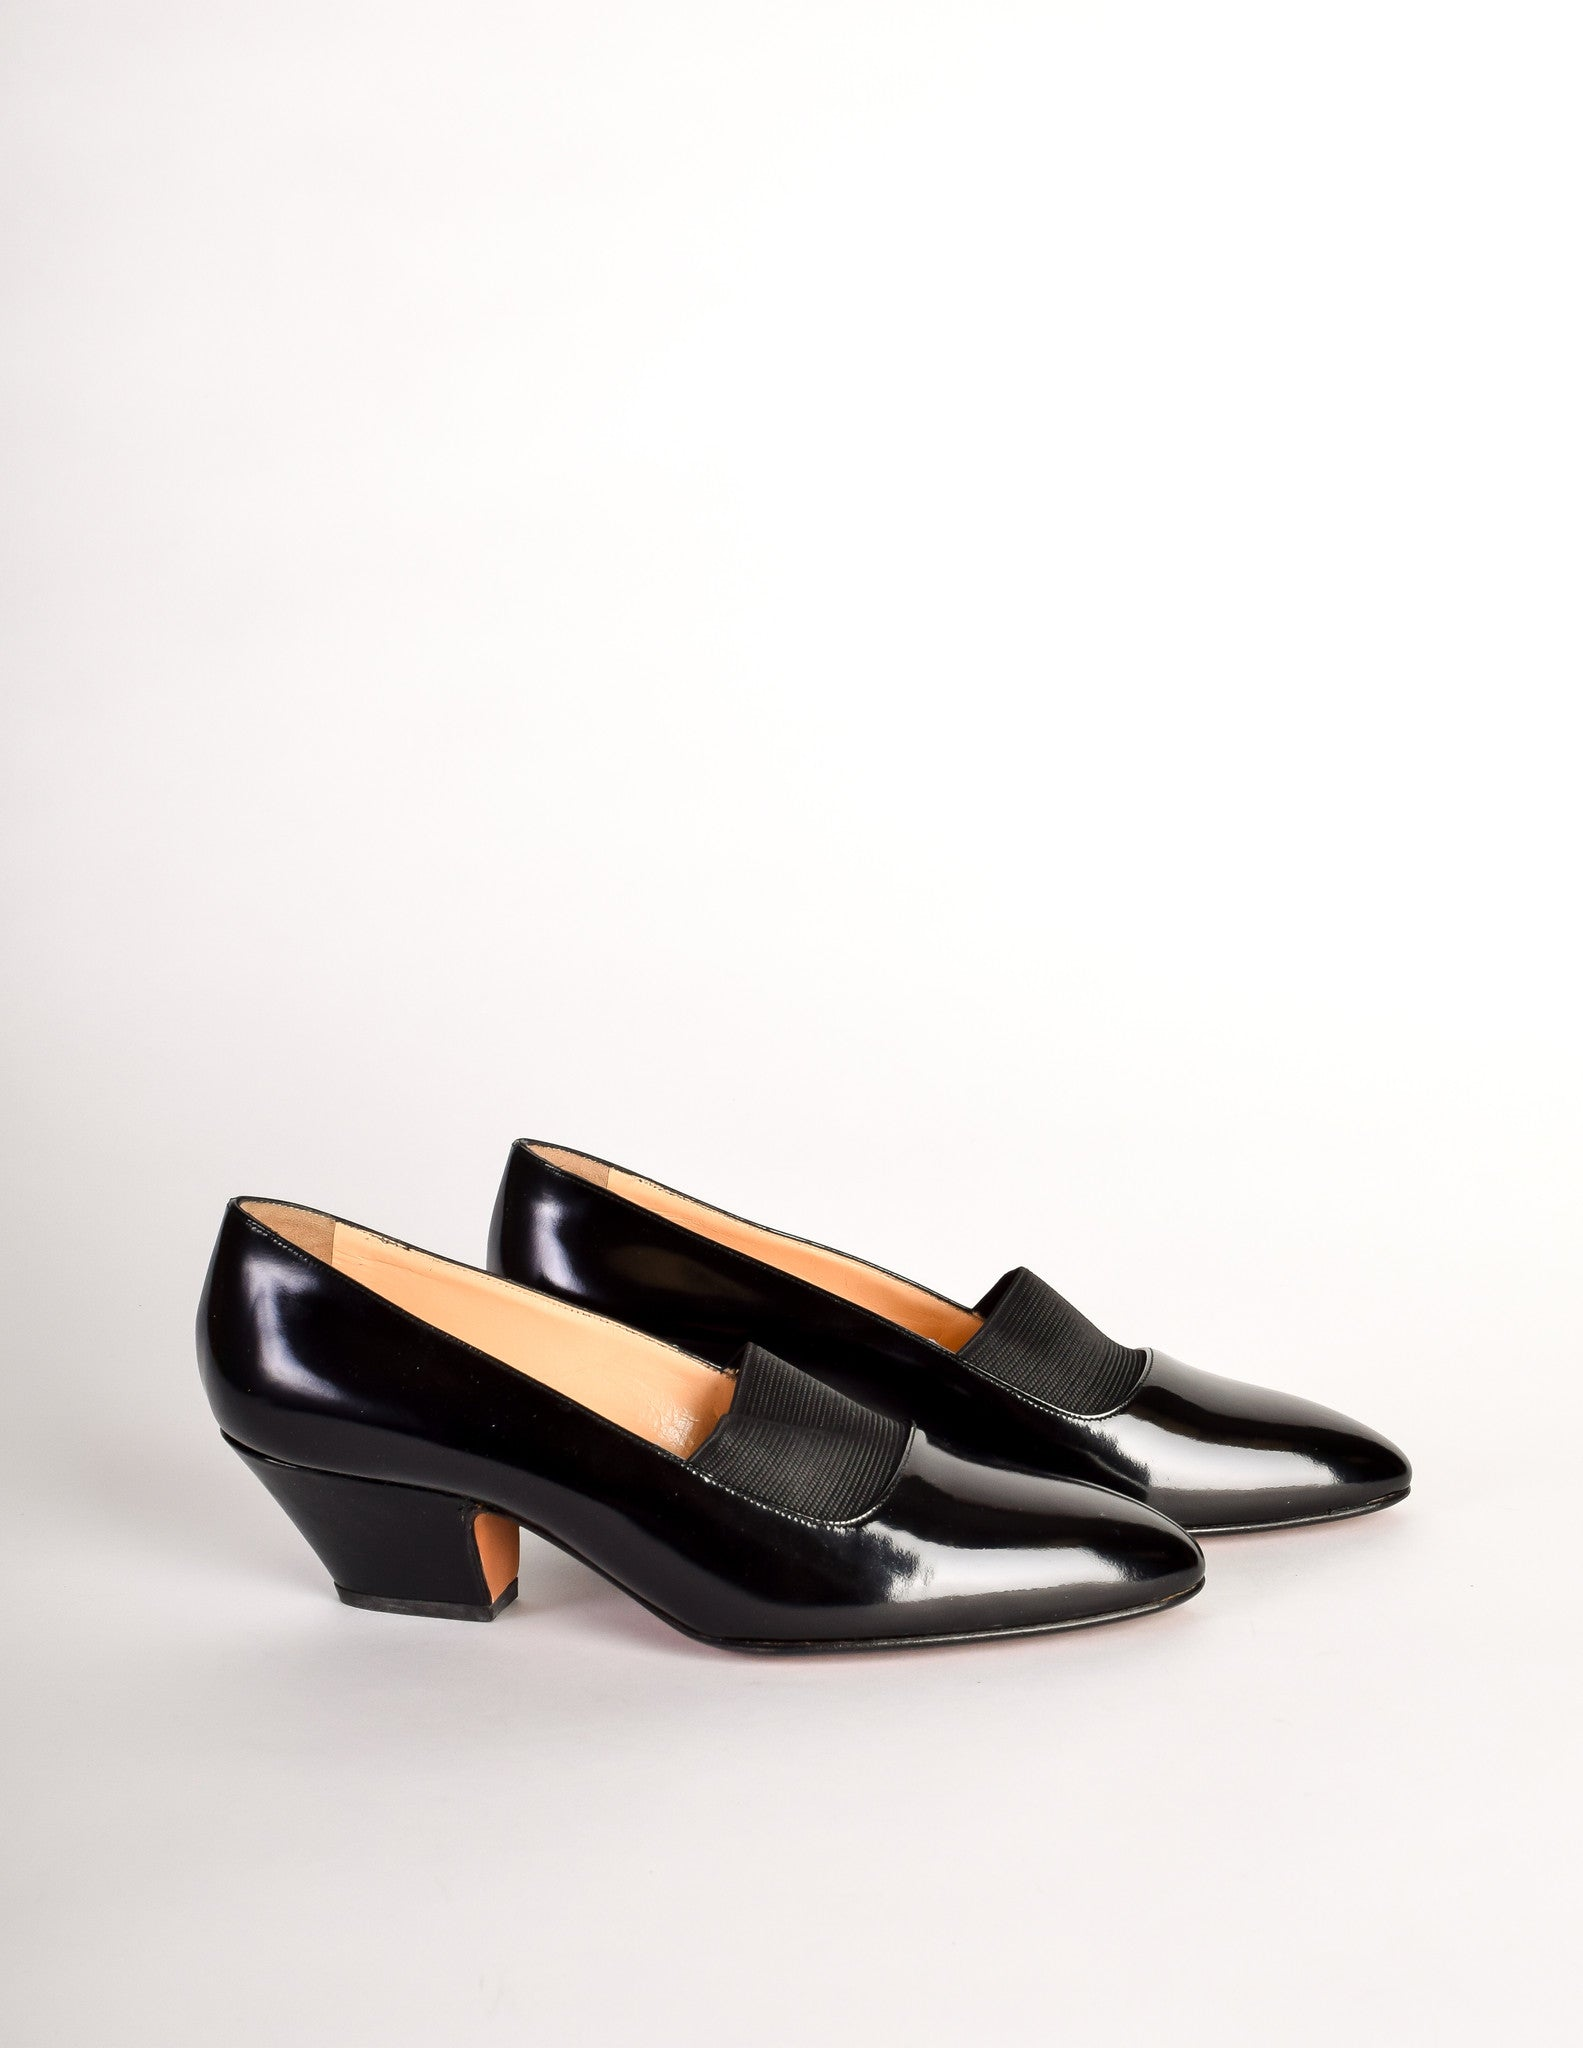 Chloe Vintage Black Patent Leather Stretch Panel Pointed Toe Heels -  Amarcord Vintage Fashion - 3